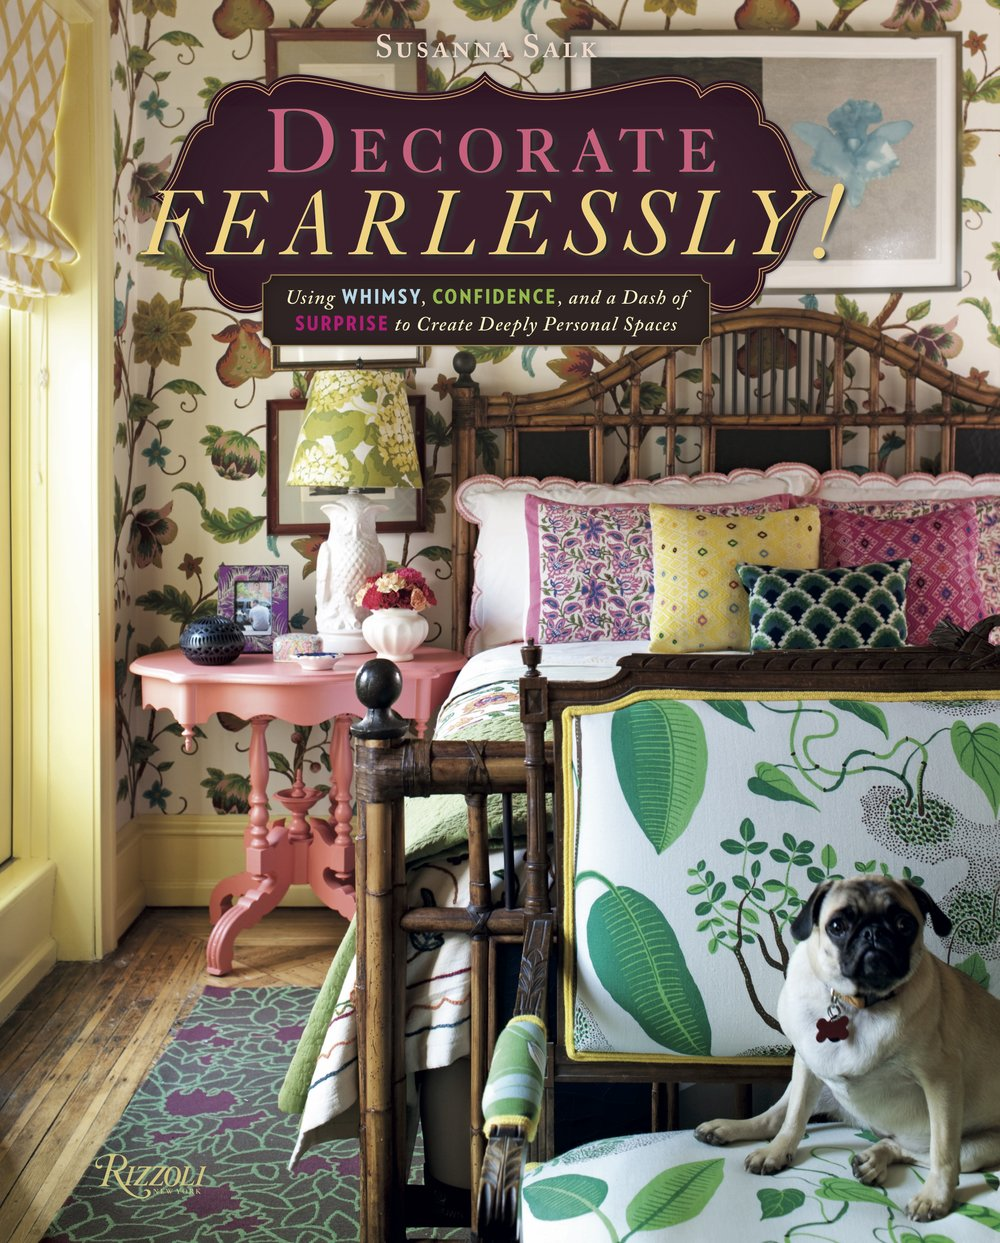 DecorateFearlessly_Cover.jpg